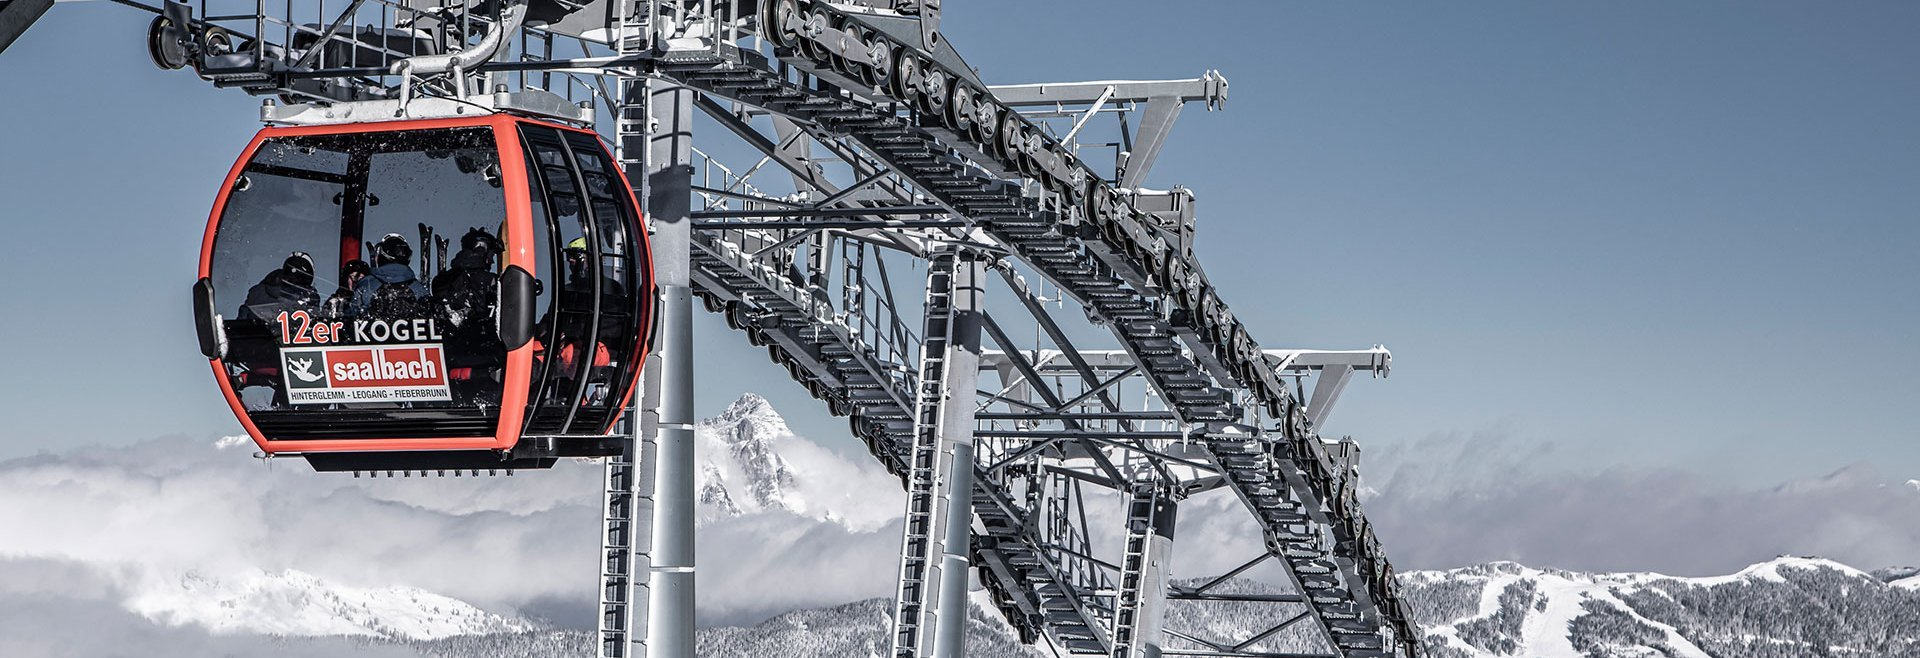 12er Kogel gondola lift